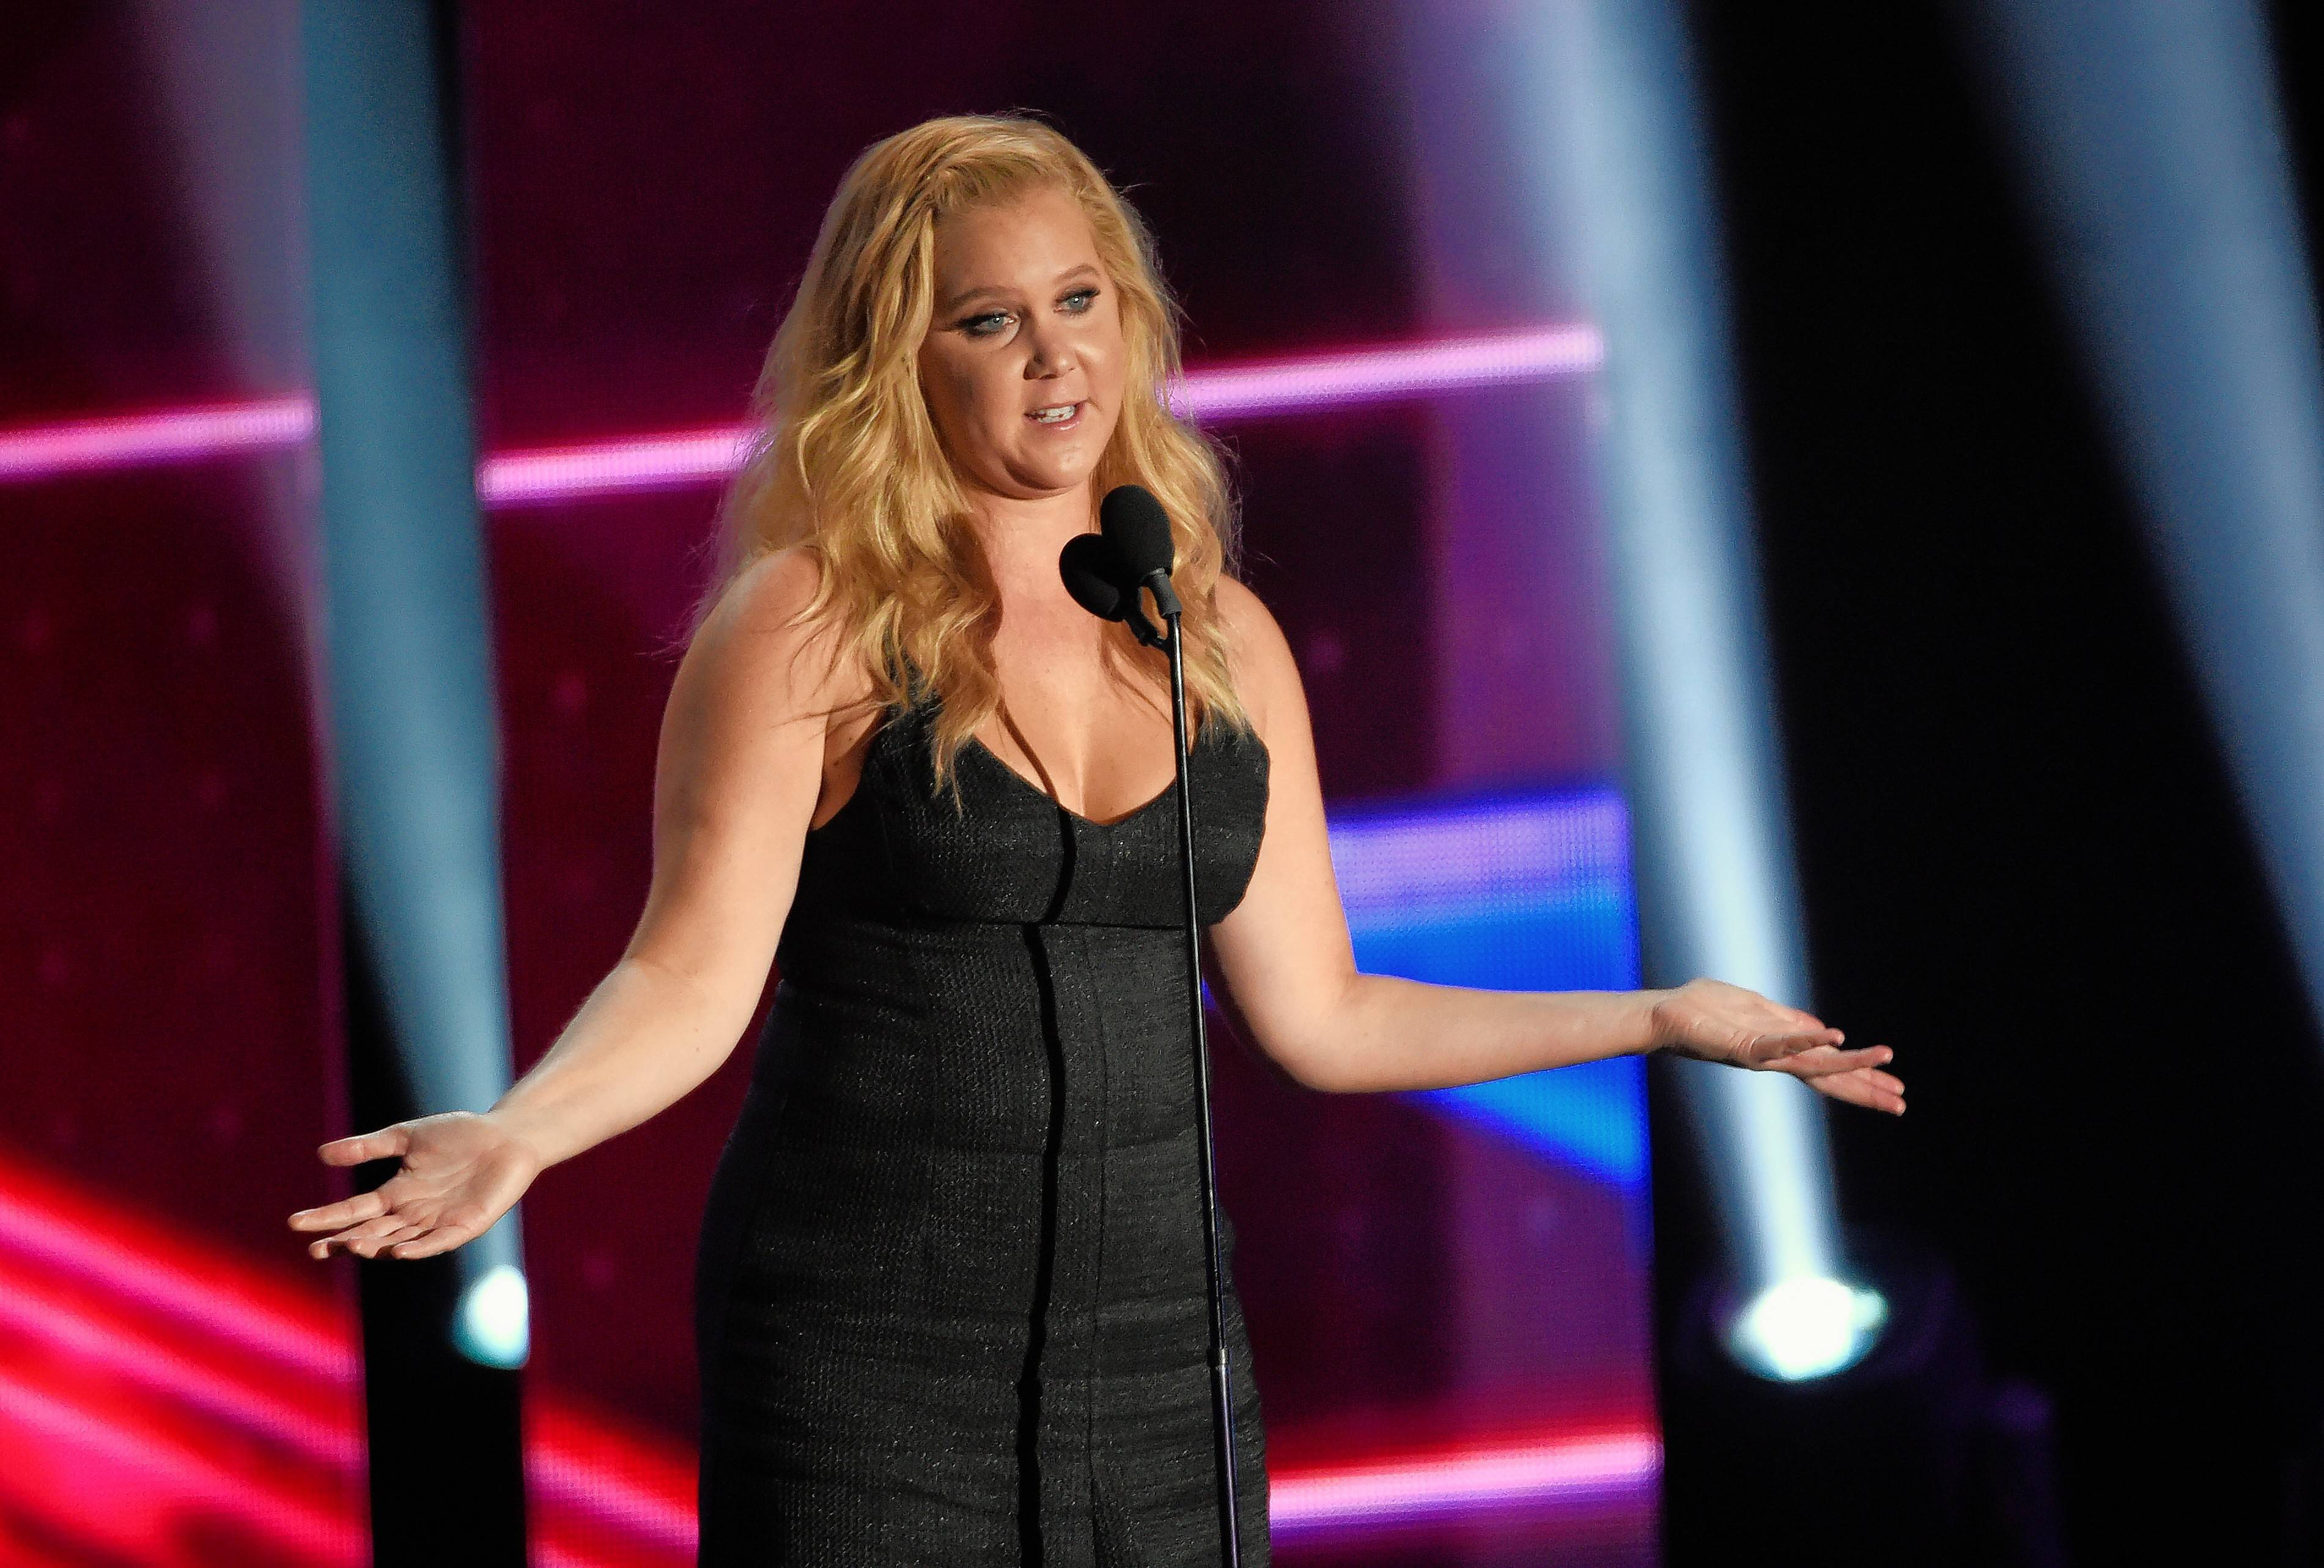 Best bets this week: Amy Schumer, holiday shows & more